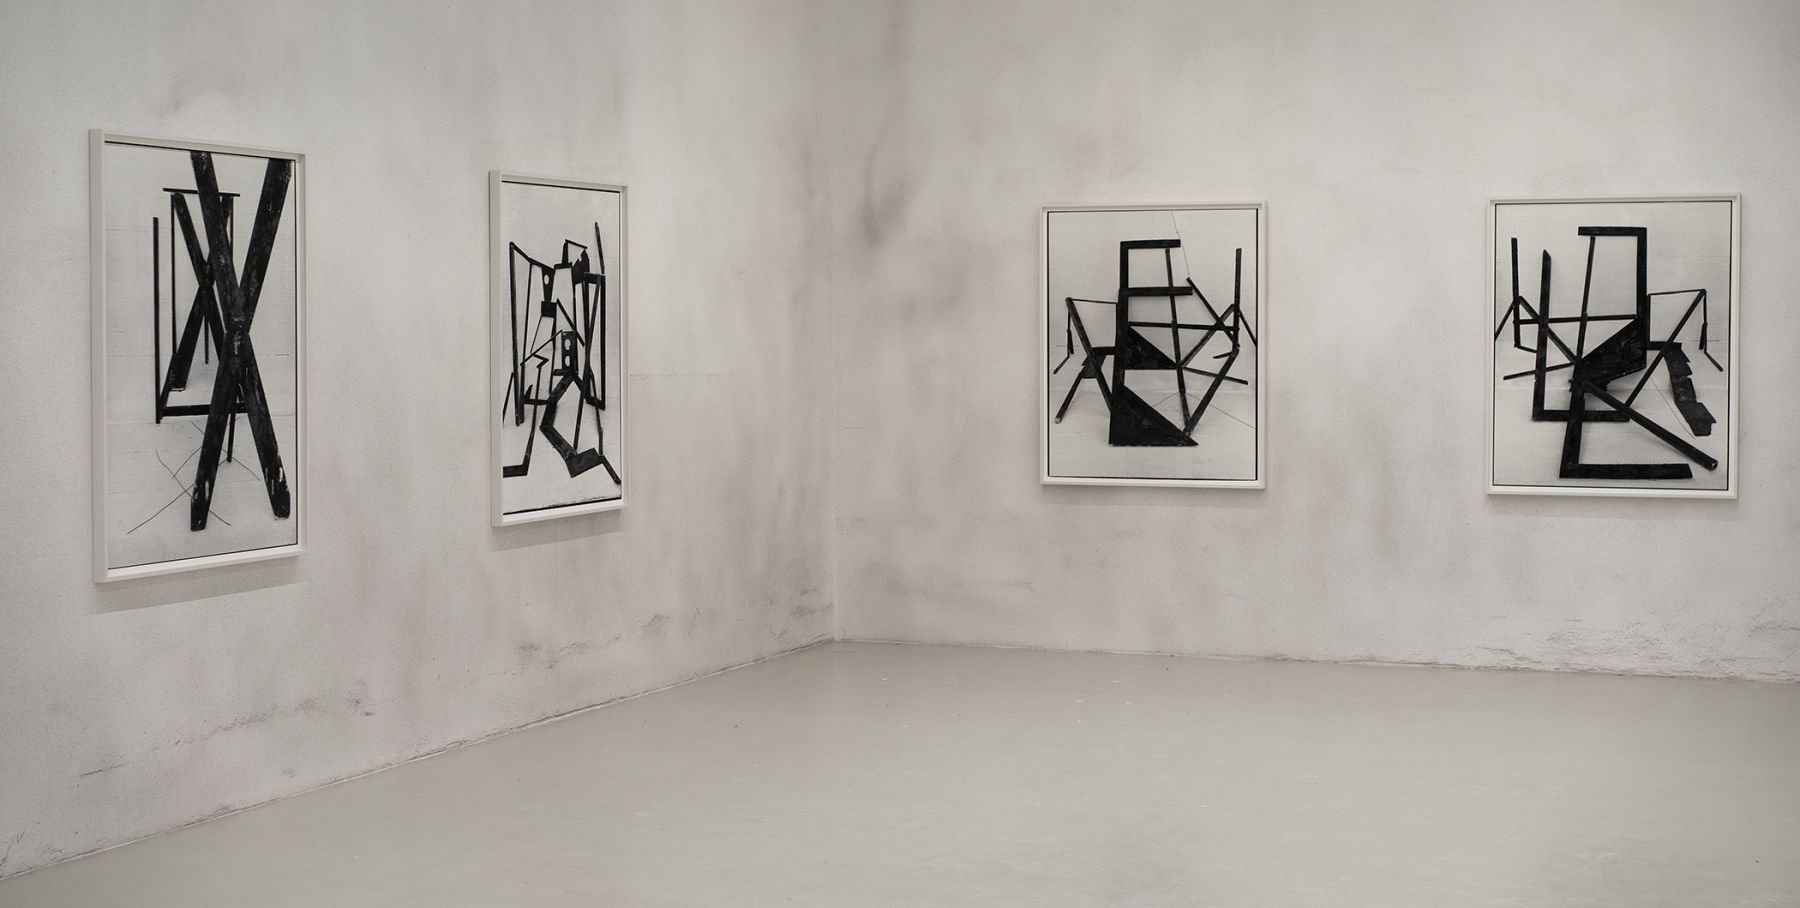 American Type installation view at Galerie Lisa Kandlhofer, Vienna